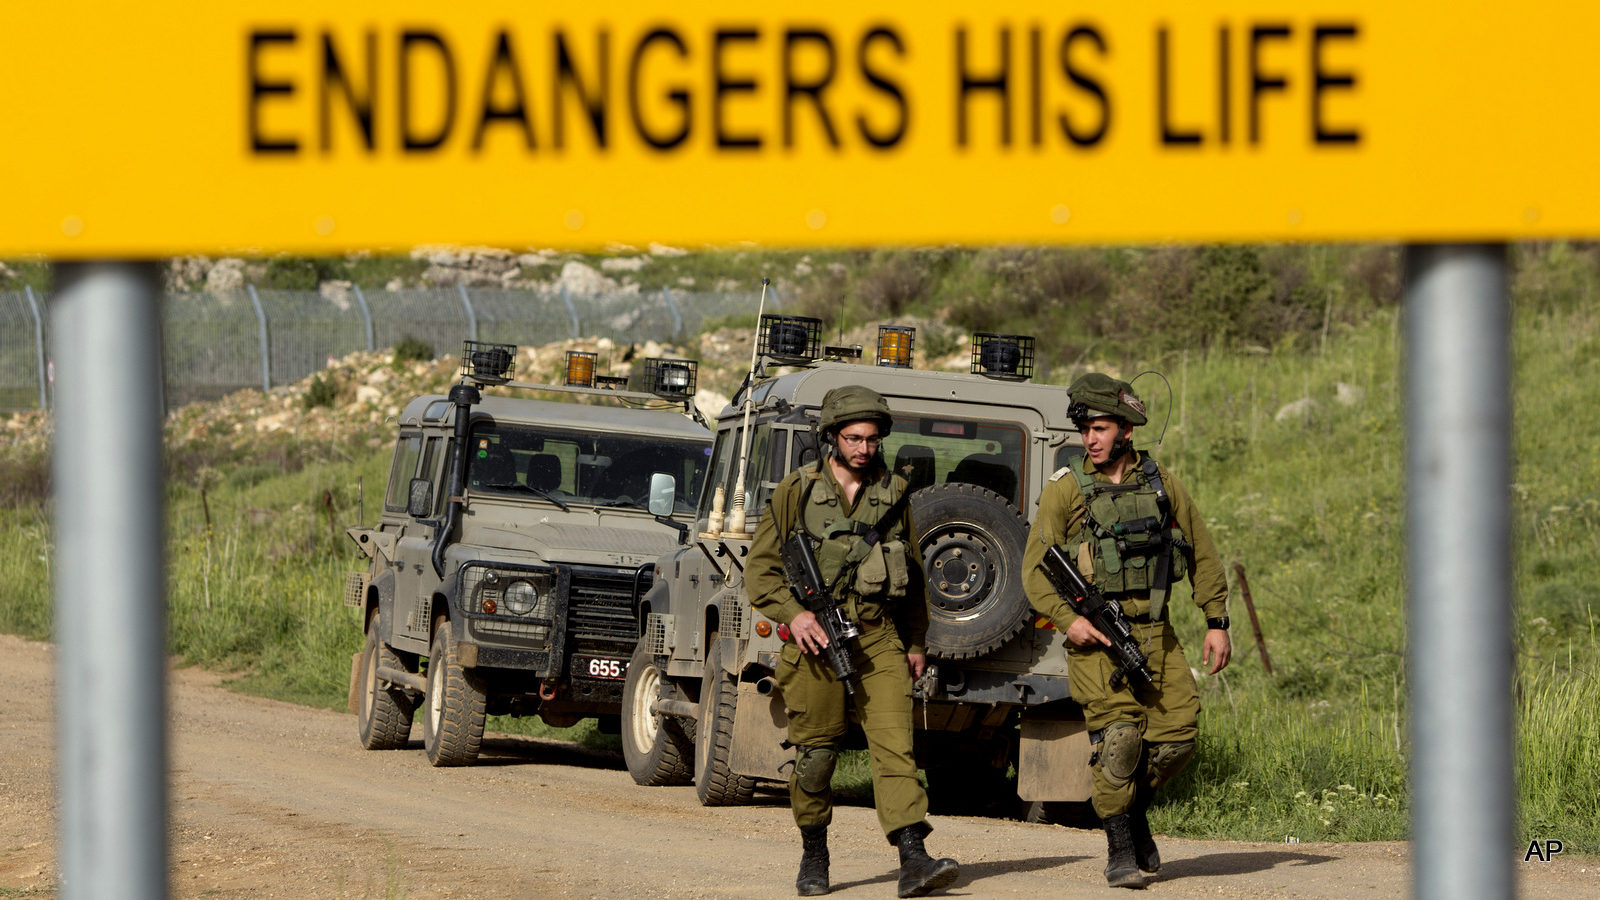 Israeli soldiers walks near the border with Syria near the site of a Sunday Israeli airstrike, in the Israeli controlled Golan Heights, Monday, April 27, 2015. Israel's military said Sunday it launched an airstrike on its border with Syria after spotting militants carrying a bomb in the Israeli-held Golan Heights. (AP Photo/Ariel Schalit)